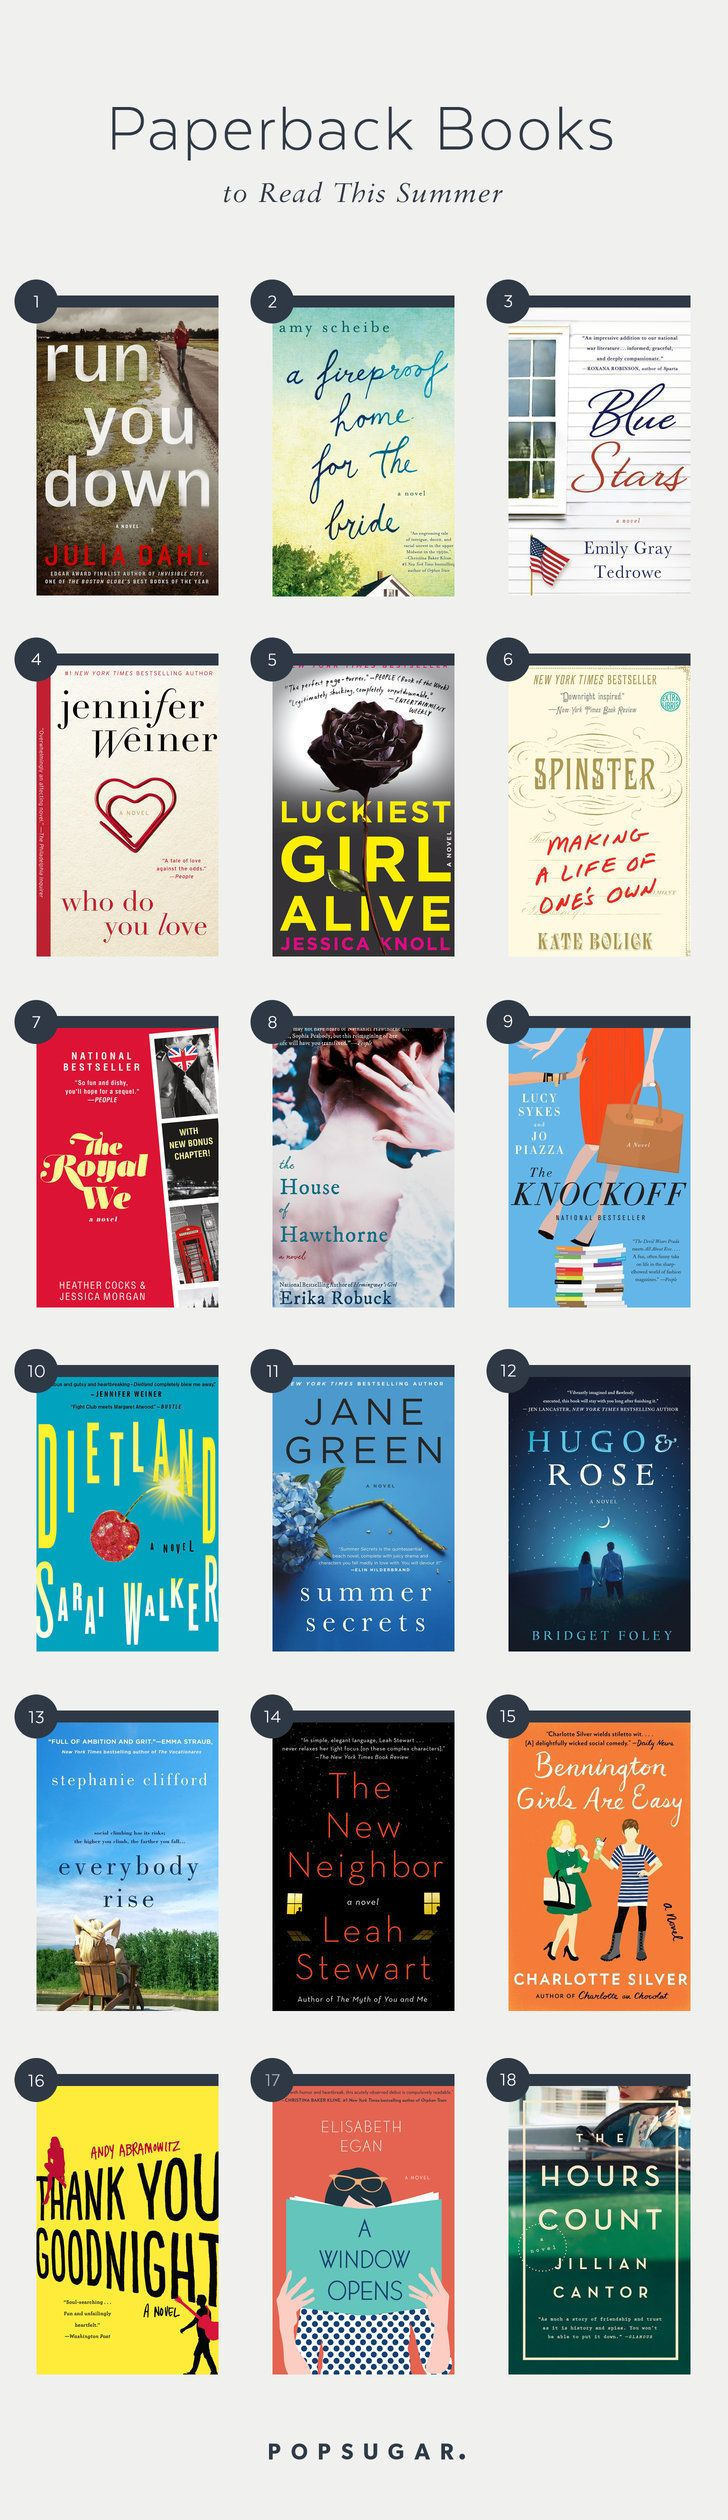 18 Paperback Books You Should Read Before Summer's Over! is part of Paperback books, Books you should read, Books, Reading, Books to read, Book humor - We get it  You don't always want a shiny, new hardcover  It's just too hard to lug around your beach bag filled with all of those heavy books  Or maybe you